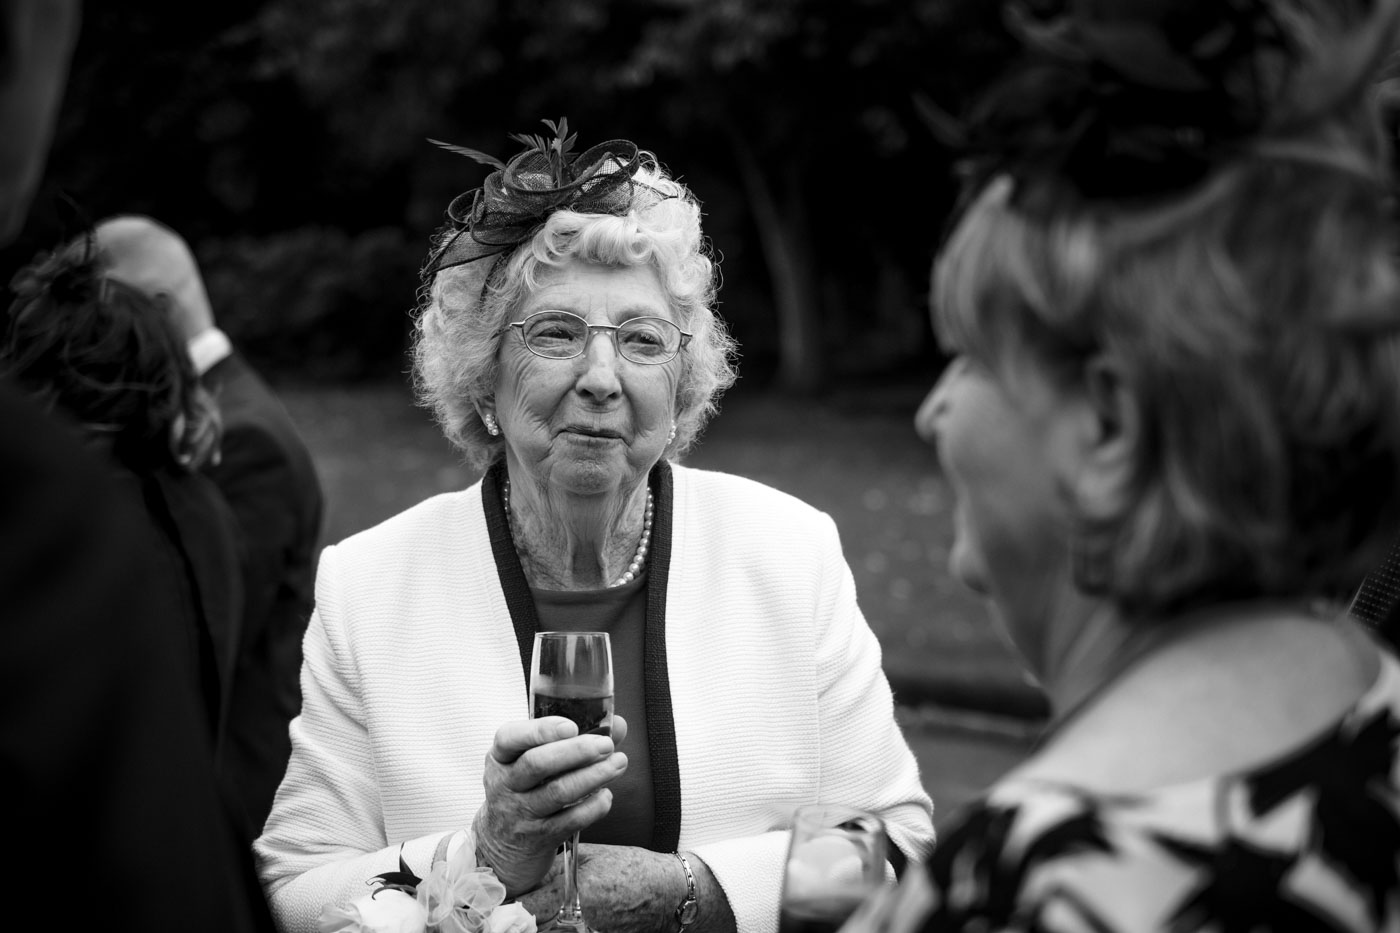 black and white photograph at wedding